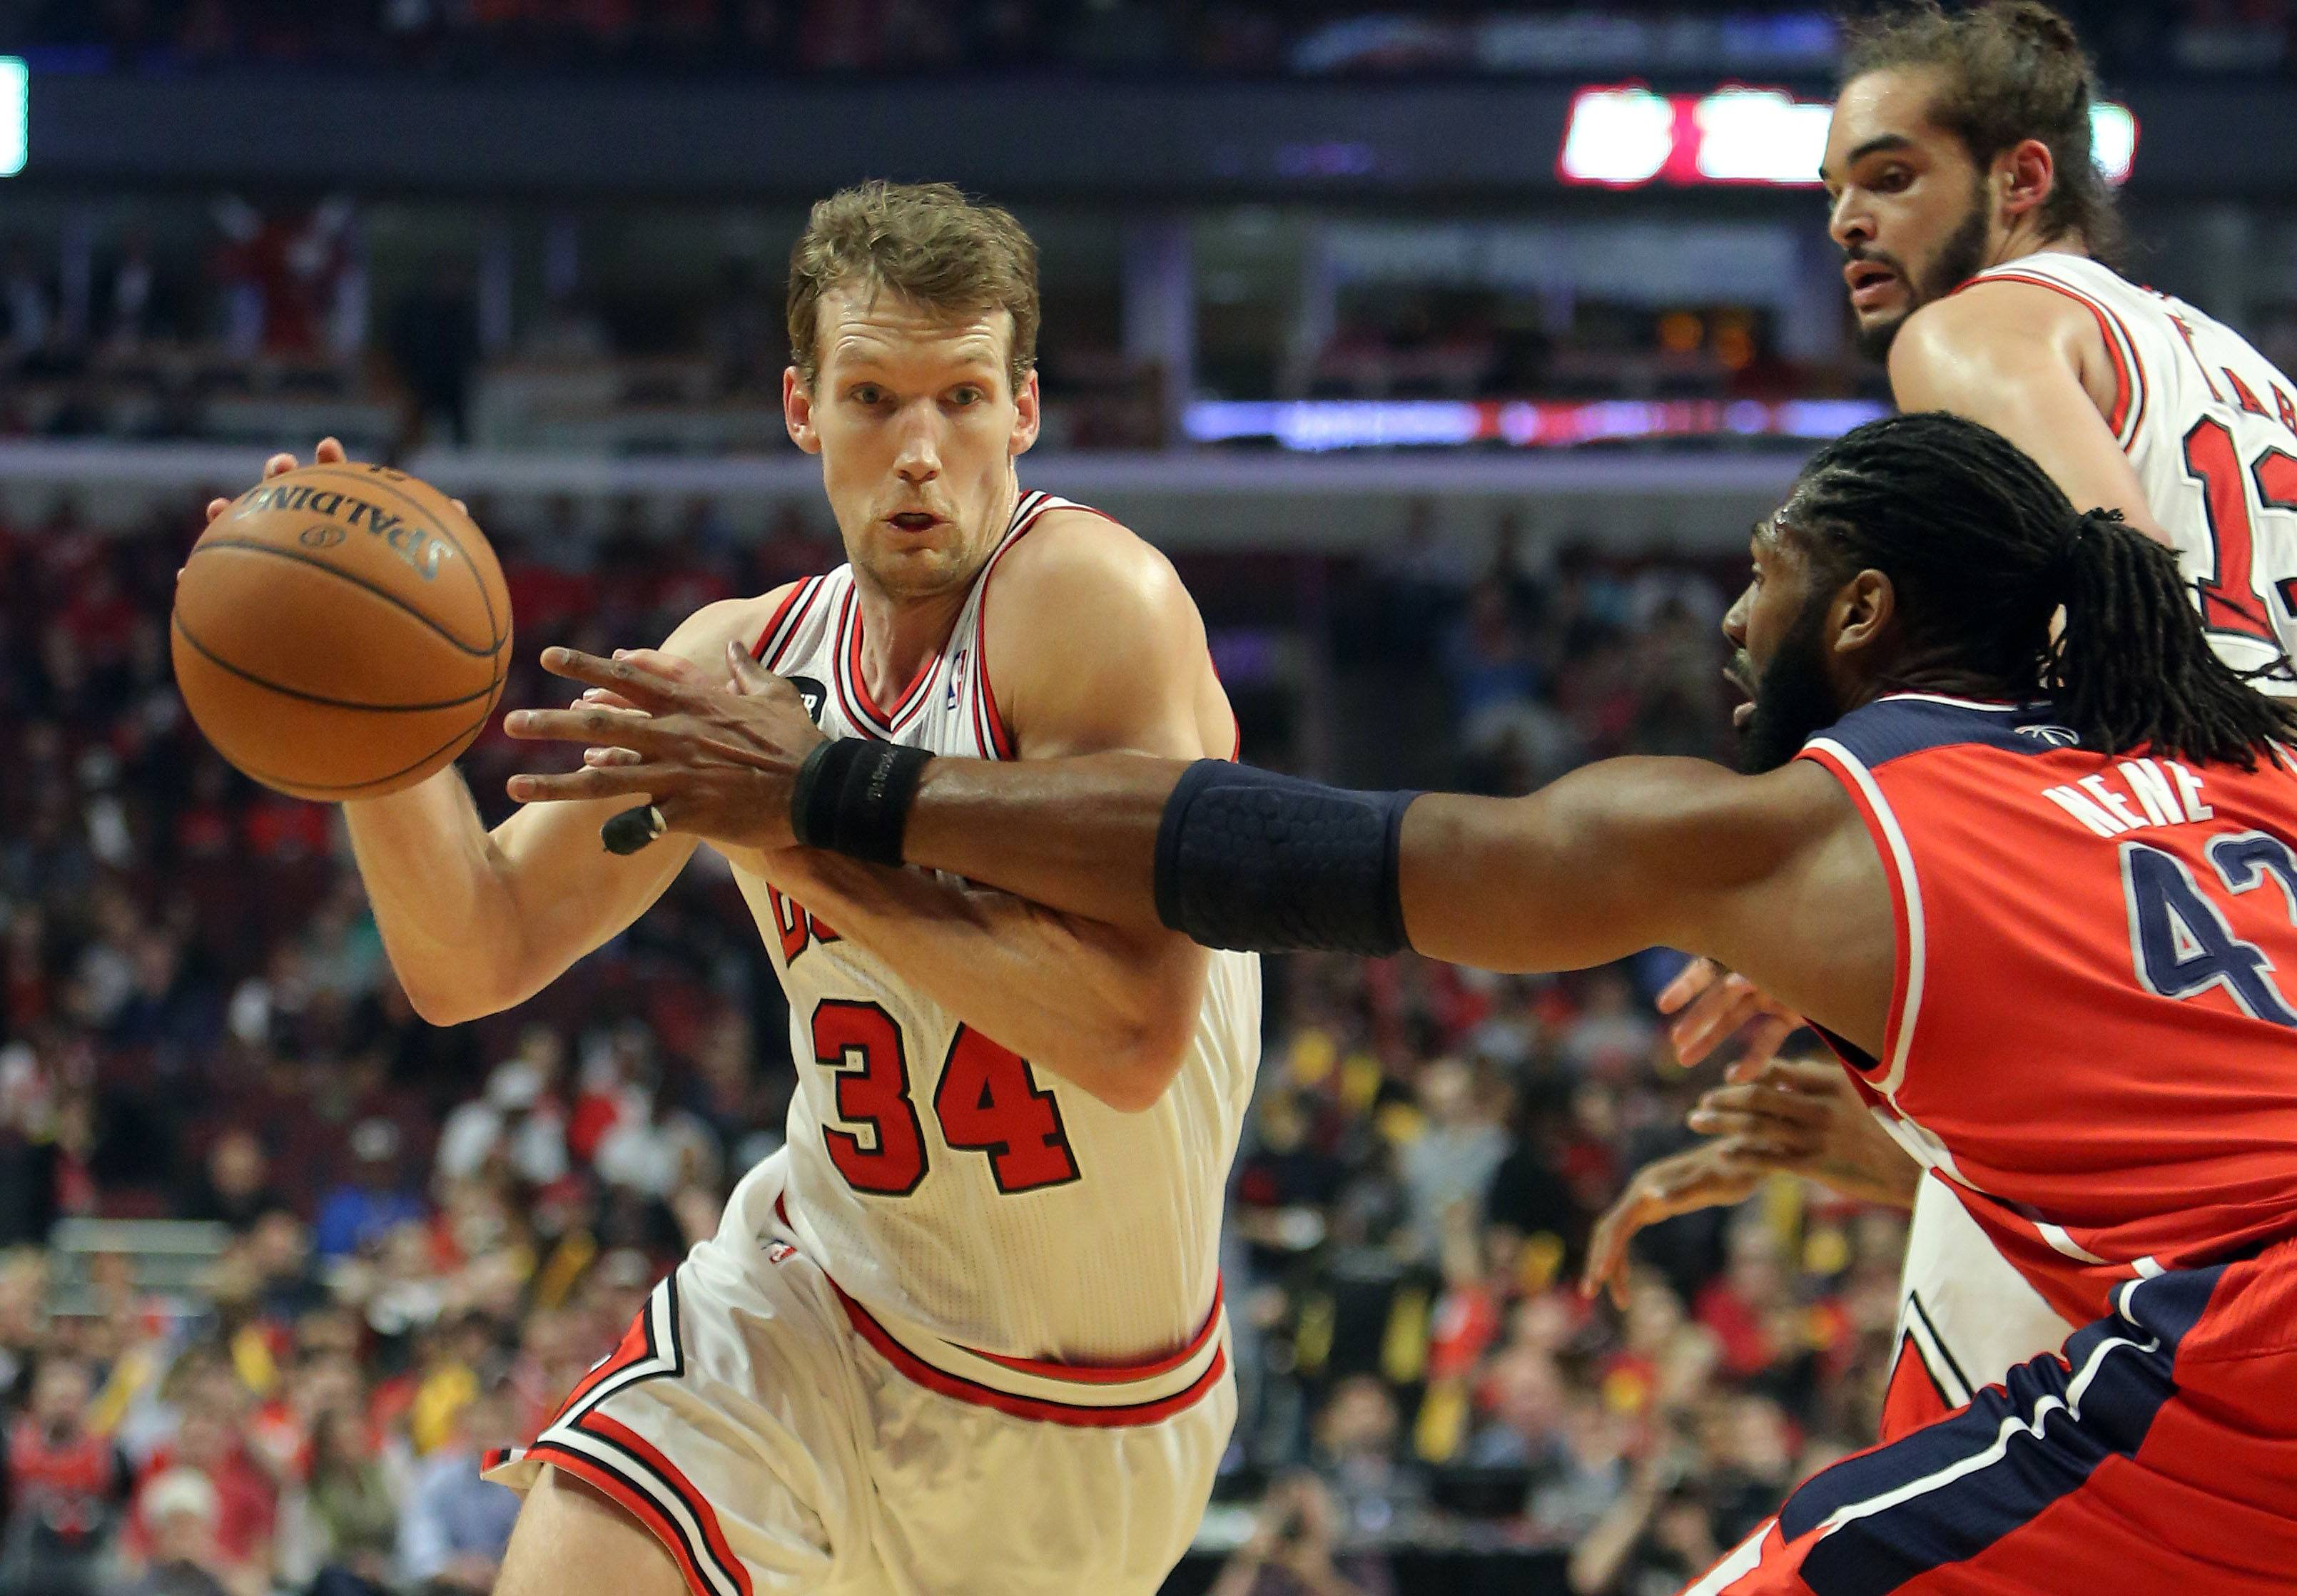 Chicago Bulls forward Mike Dunleavy drives on Washington Wizards forward Nene Hilario.